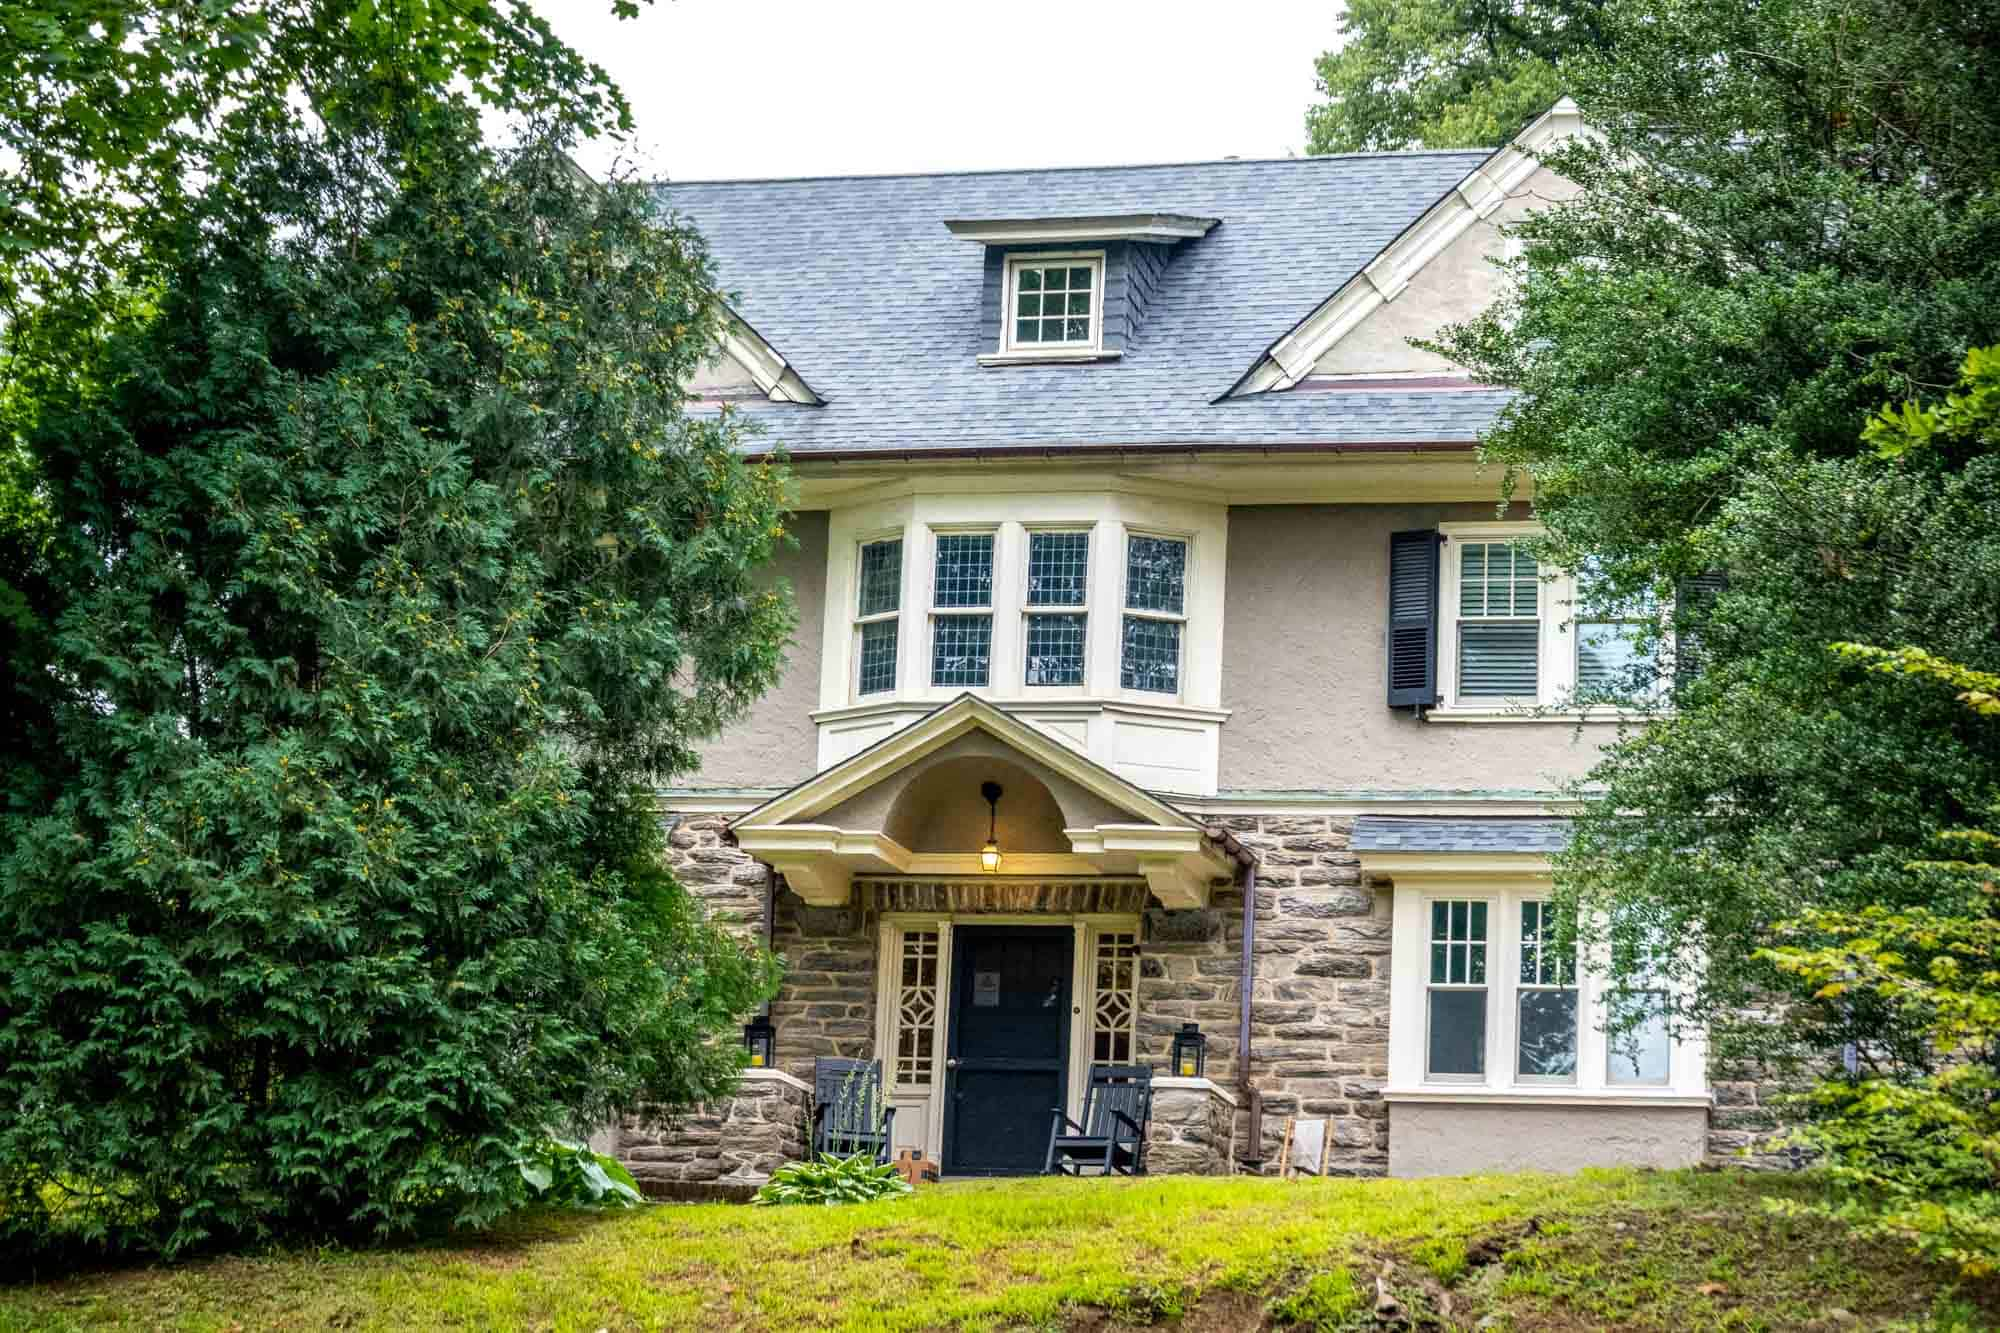 Large house made of stone and stucco with a bay window